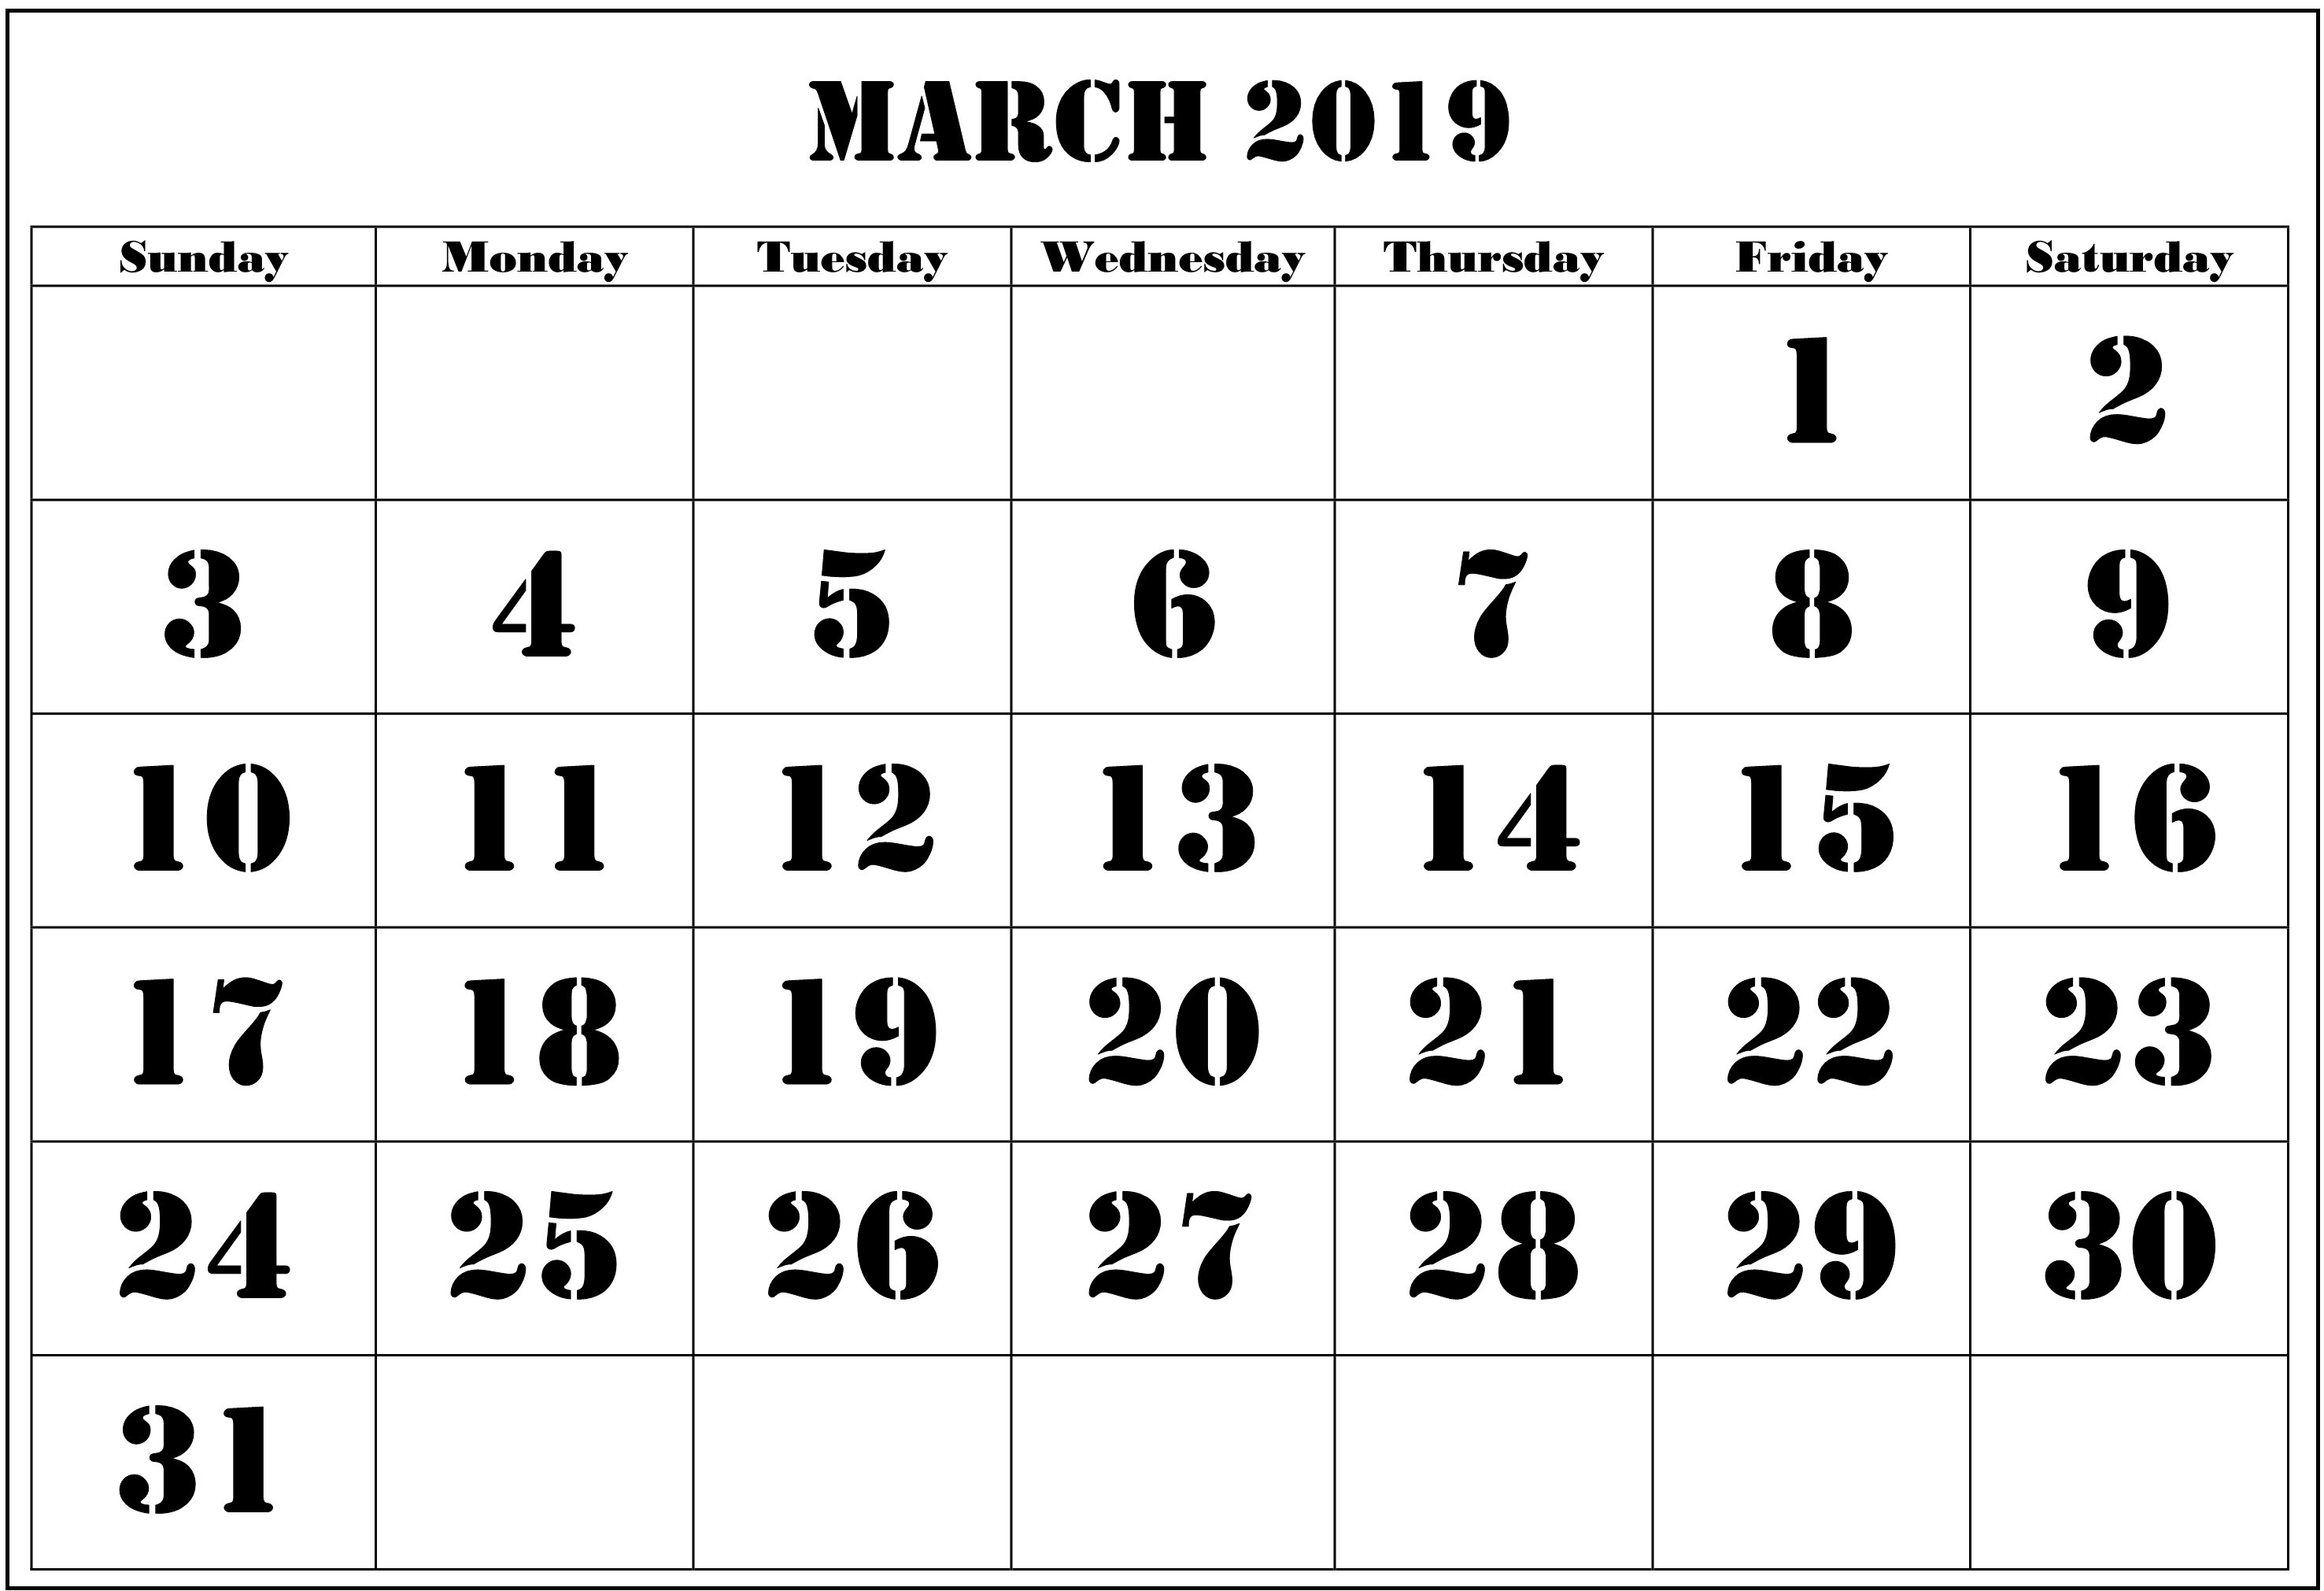 March Calendar 2019 Más Recientes March 2019 Calendar In Pdf Word Excel Printable Template Of March Calendar 2019 Más Actual Odia Calendar 2019 with March Odishain